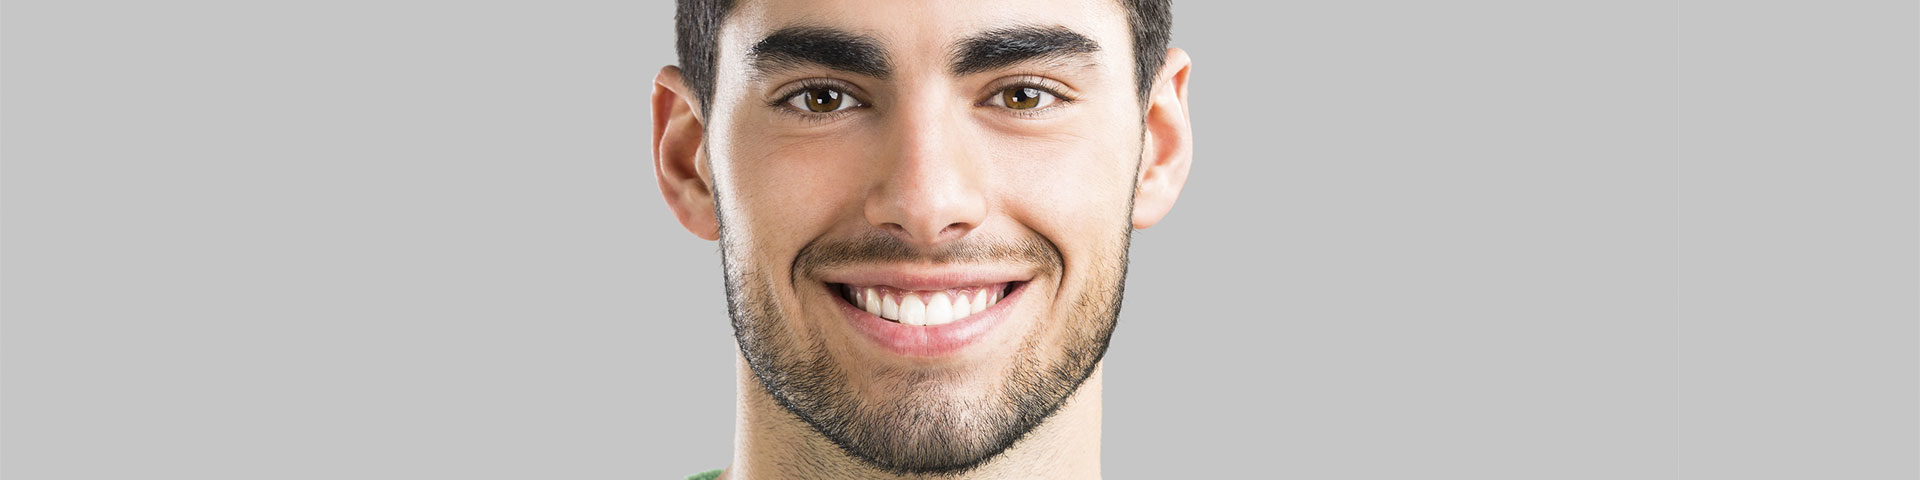 The Importance of Regular Teeth Cleaning